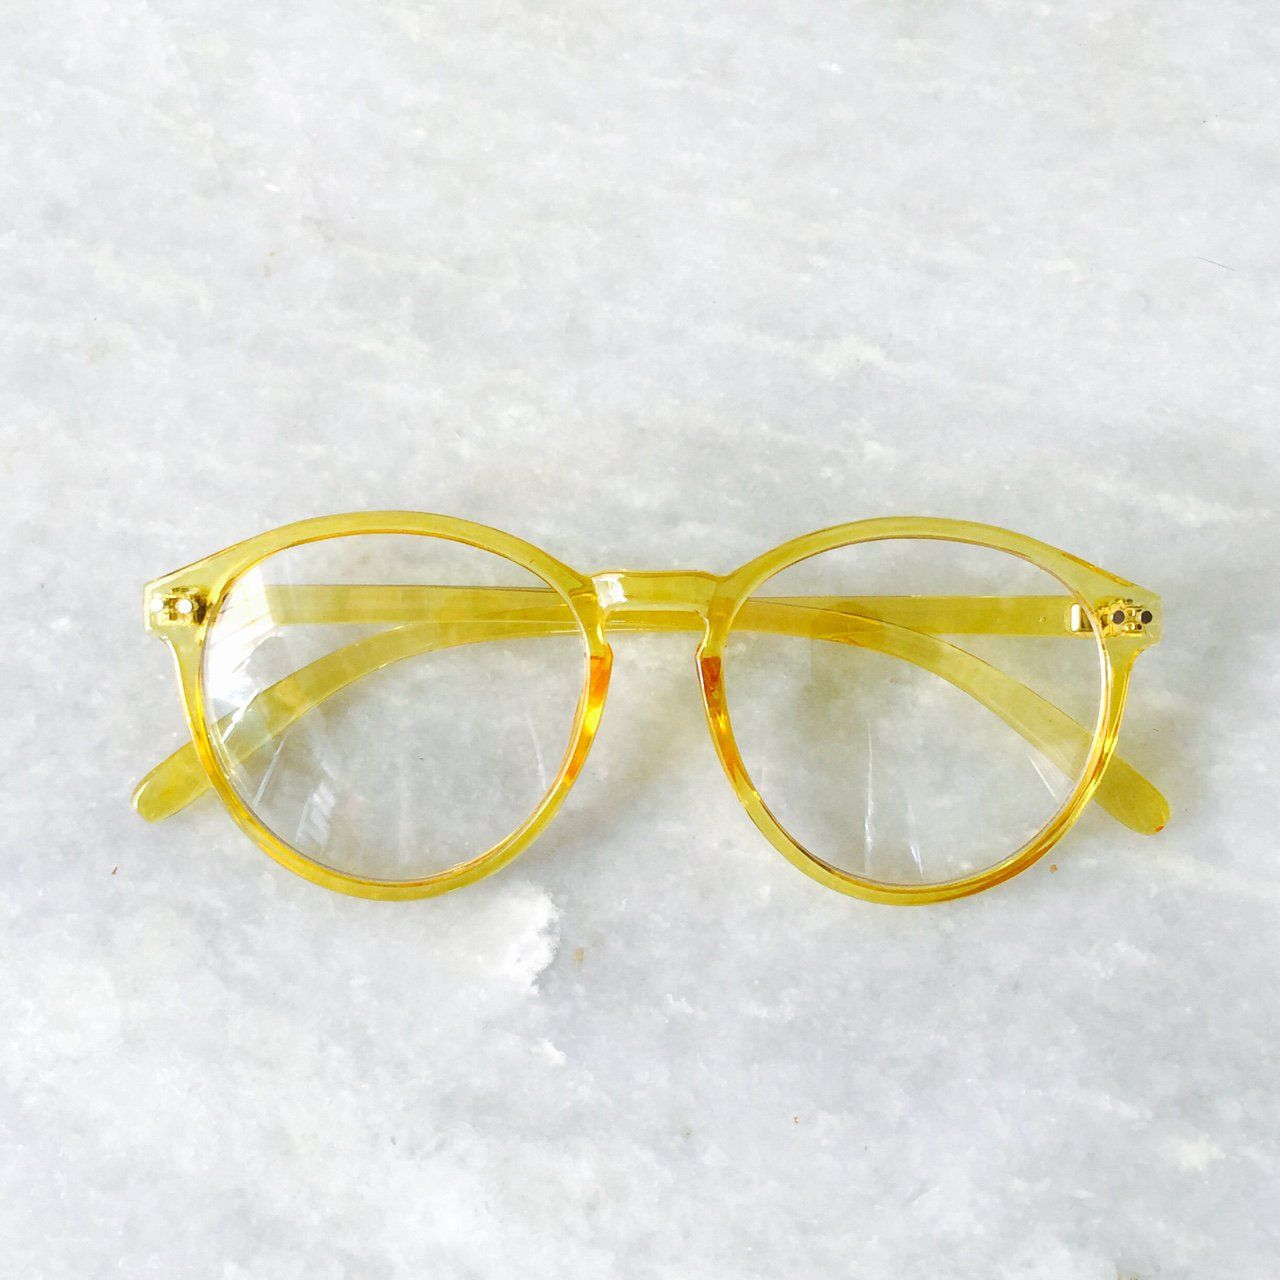 e3e9124b2c Retro Yellow Pantos Frame Clear Lens Glasses ⌛ Yellow Frame • Pantos Style  • Replaceable Lens • Retro Fit • Denim shorts • Basic Tee • Vans Shoes •  SENT ...